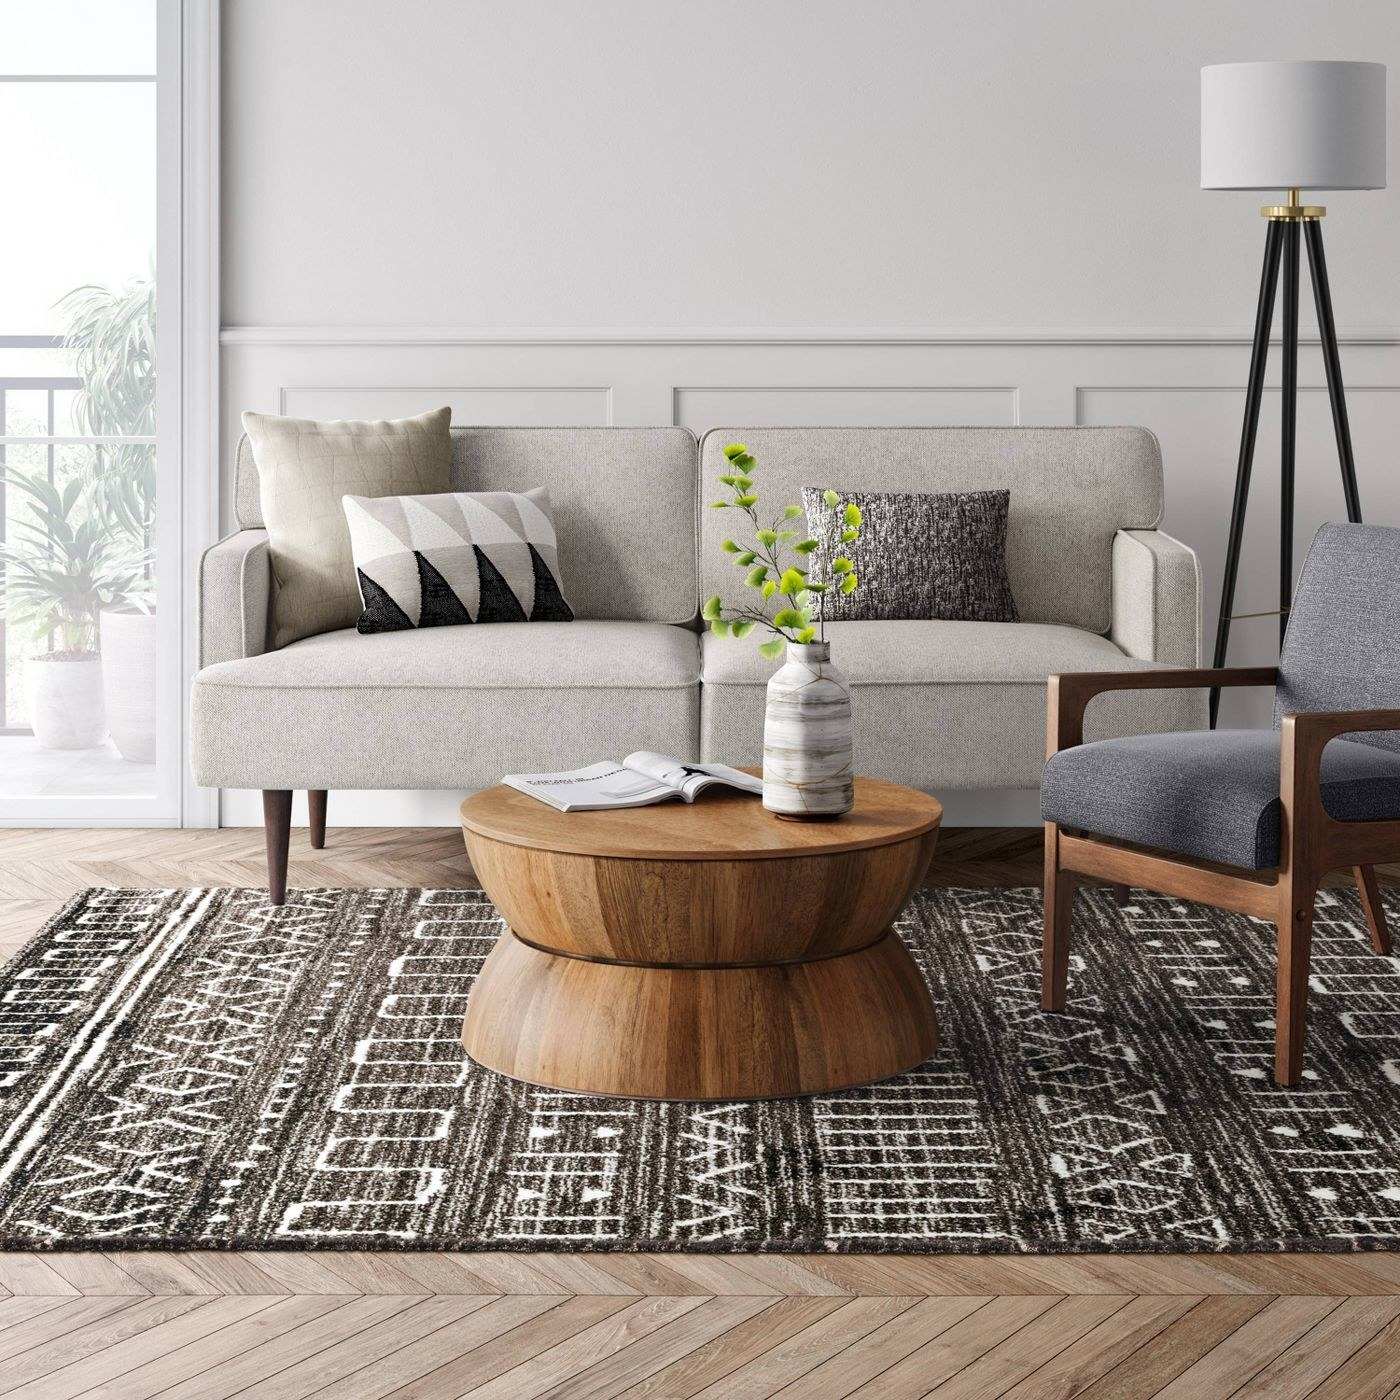 tribal printed black and white rug in the middle of a living room